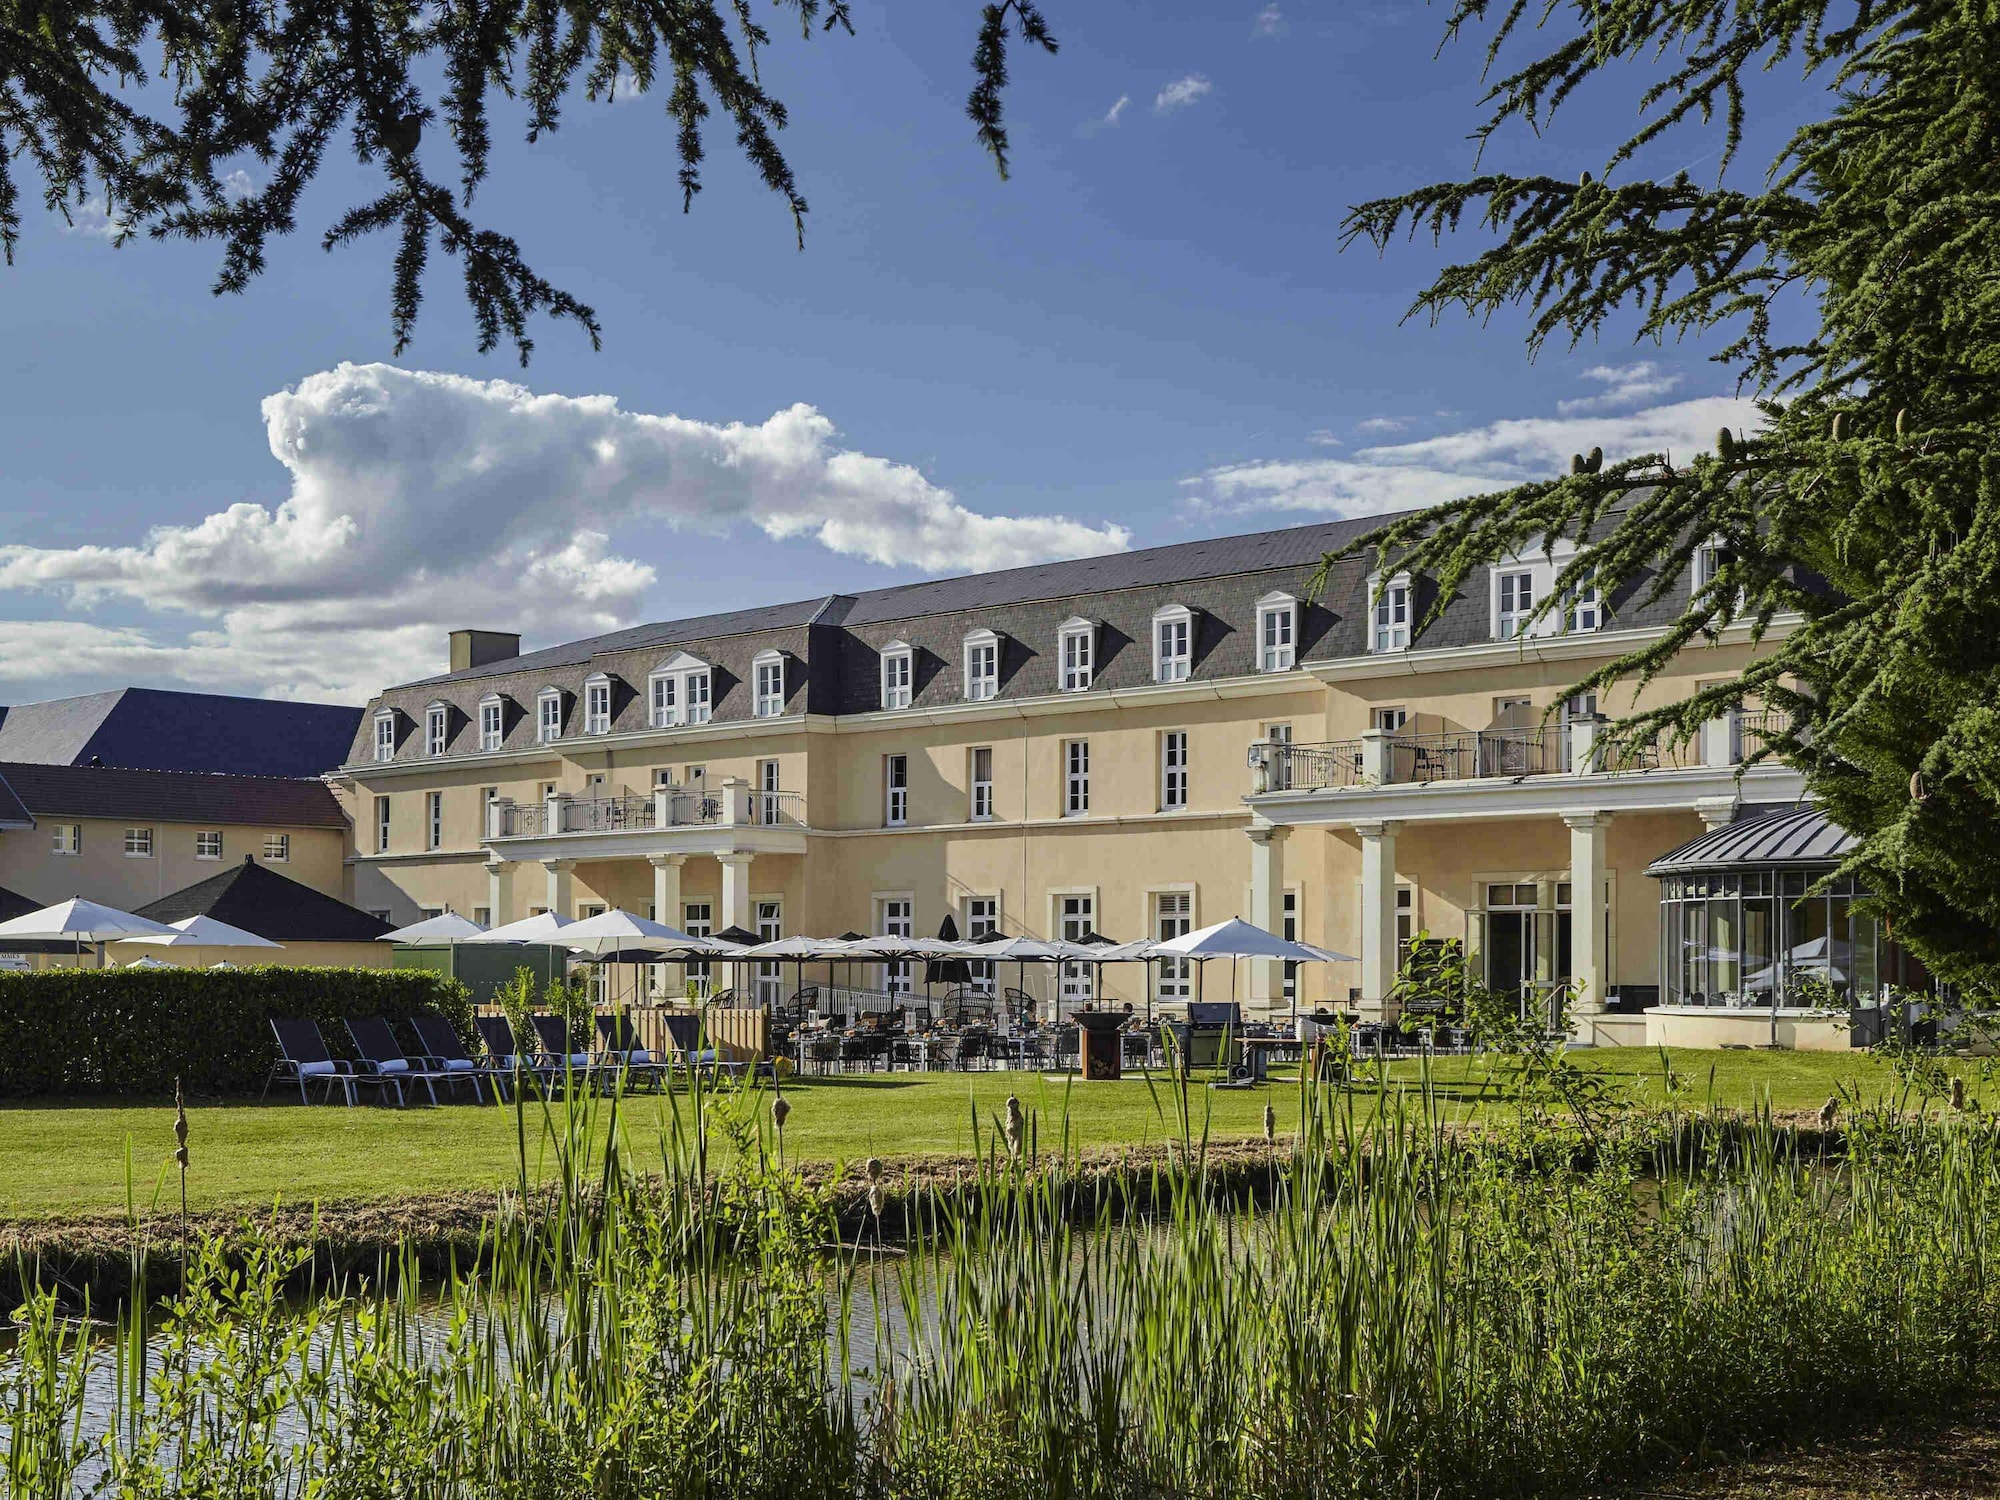 Mercure Chantilly Resort & Conventions, Oise